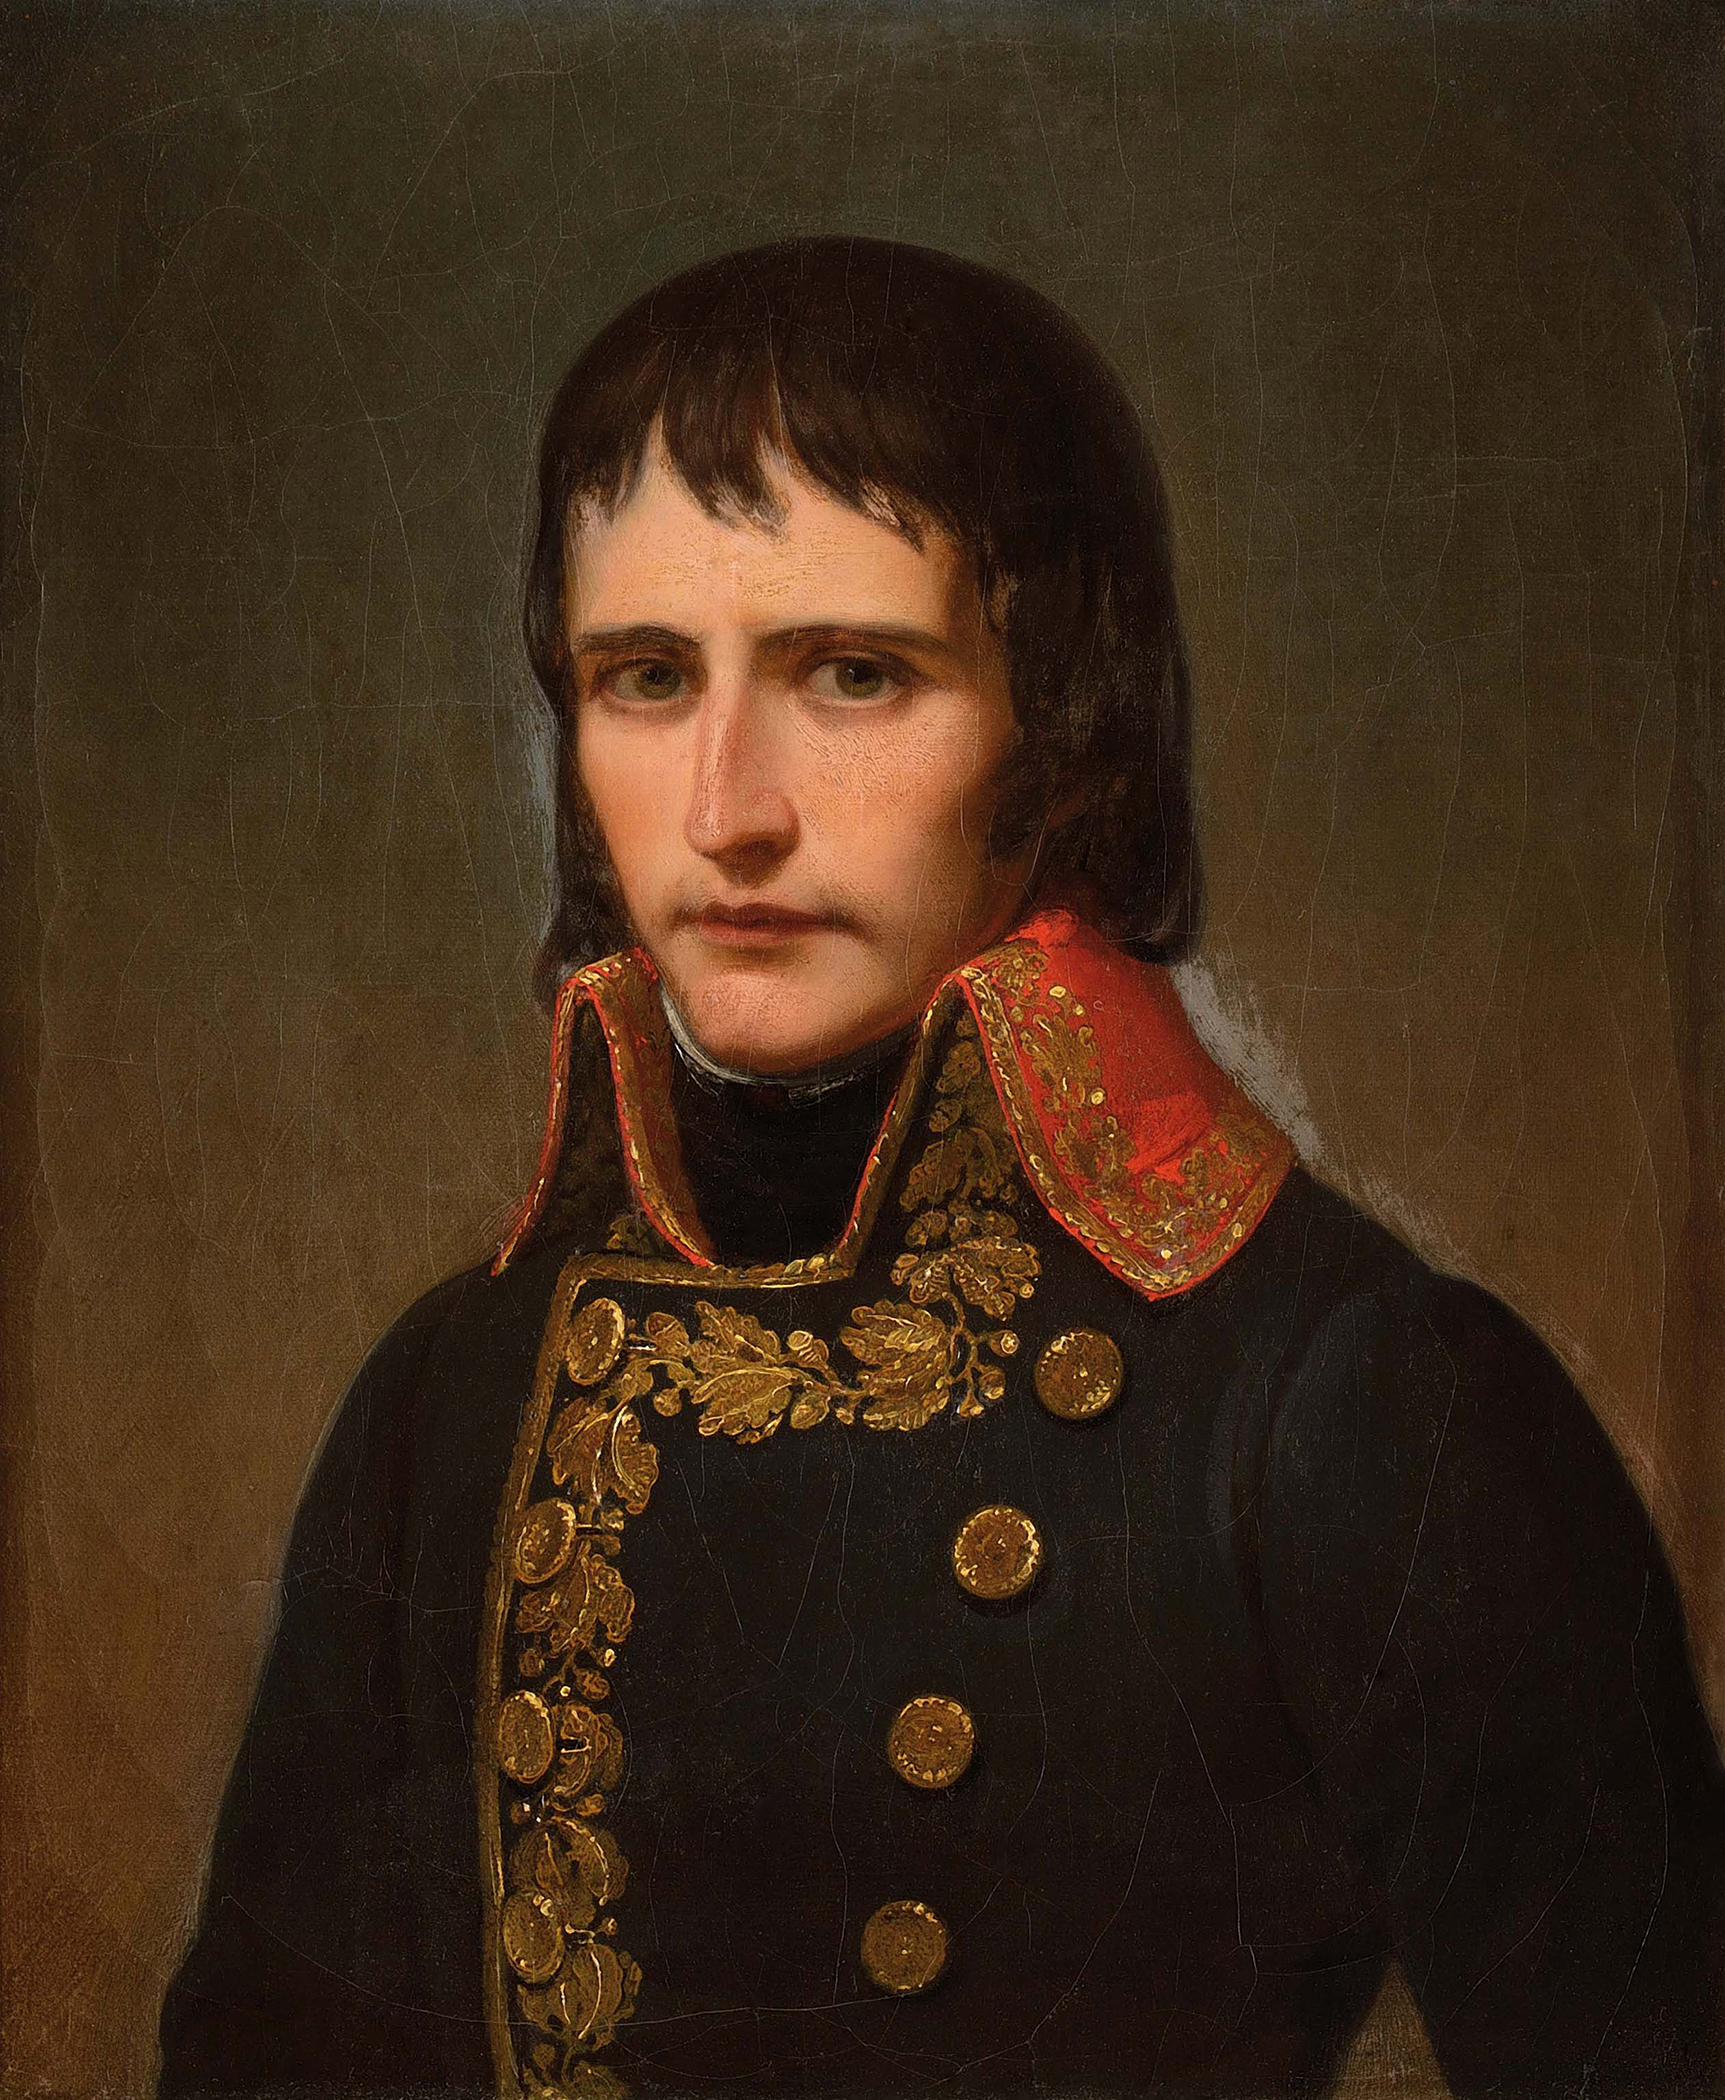 Portrait of Napoléon Bonaparte (1769-1821), Divisional general (1795), First Consul of the French Republic (1799-1804), Emperor of the French (1804-1814; 1815), King of Italy (1805-1814), Mediator of the Swiss Confederation (1803-1813), Protector of the Confederation of the Rhine (1806-1813), Sovereign of the Island of Elba (1814-1815), 1798 | Portraits of Kings